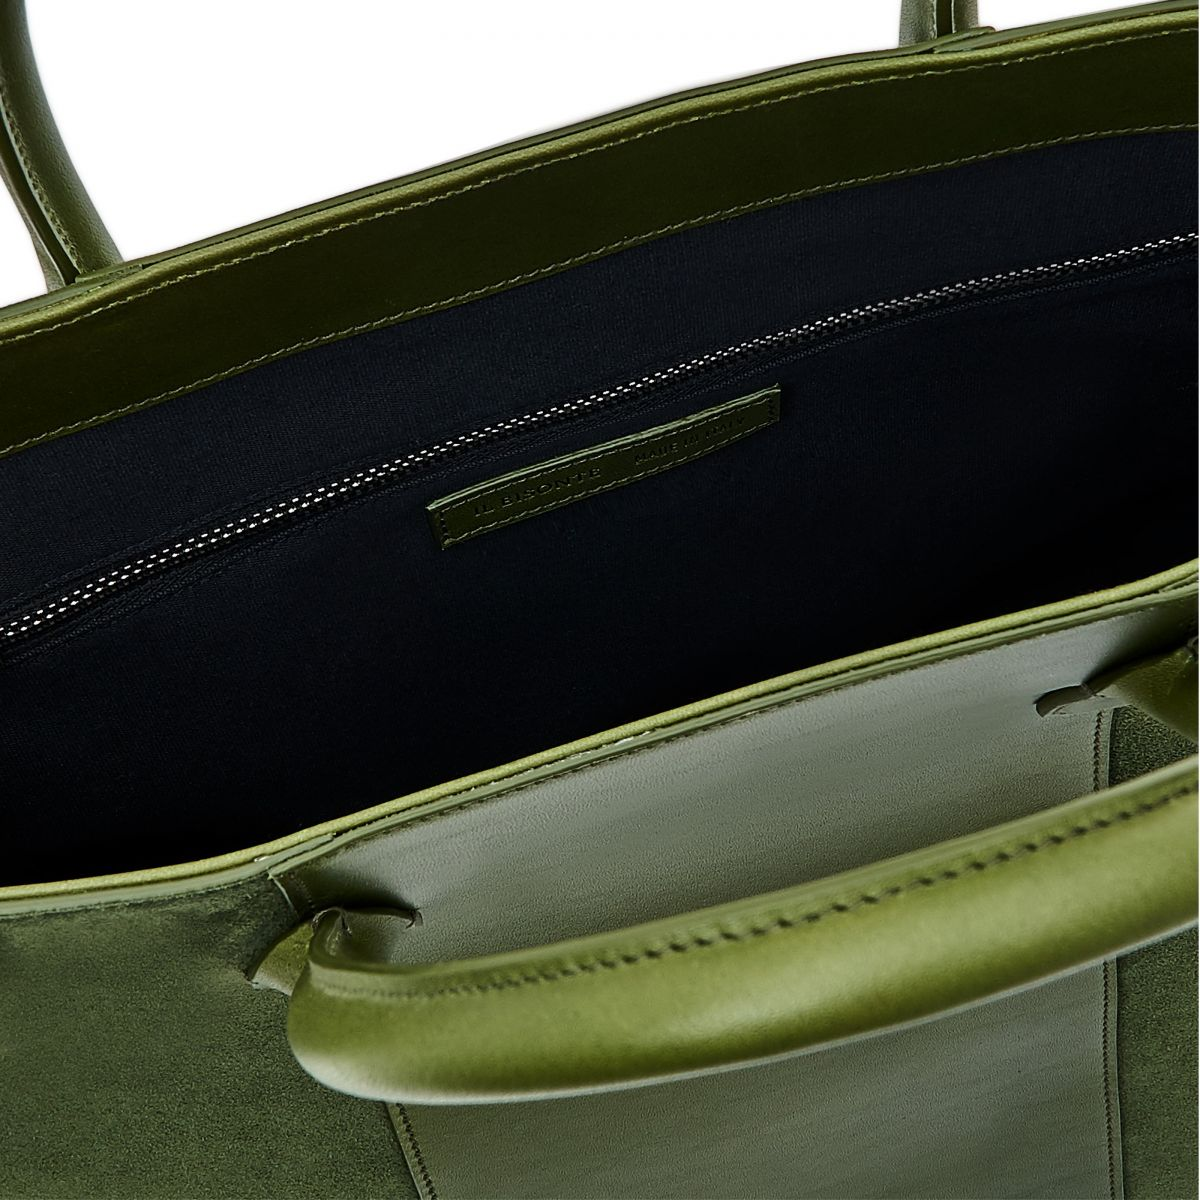 Tote  - Tote Bag in Vegetable Tanned Cowhide Leather/Re-Suede color Green - New Nomad line BTO115 | Details